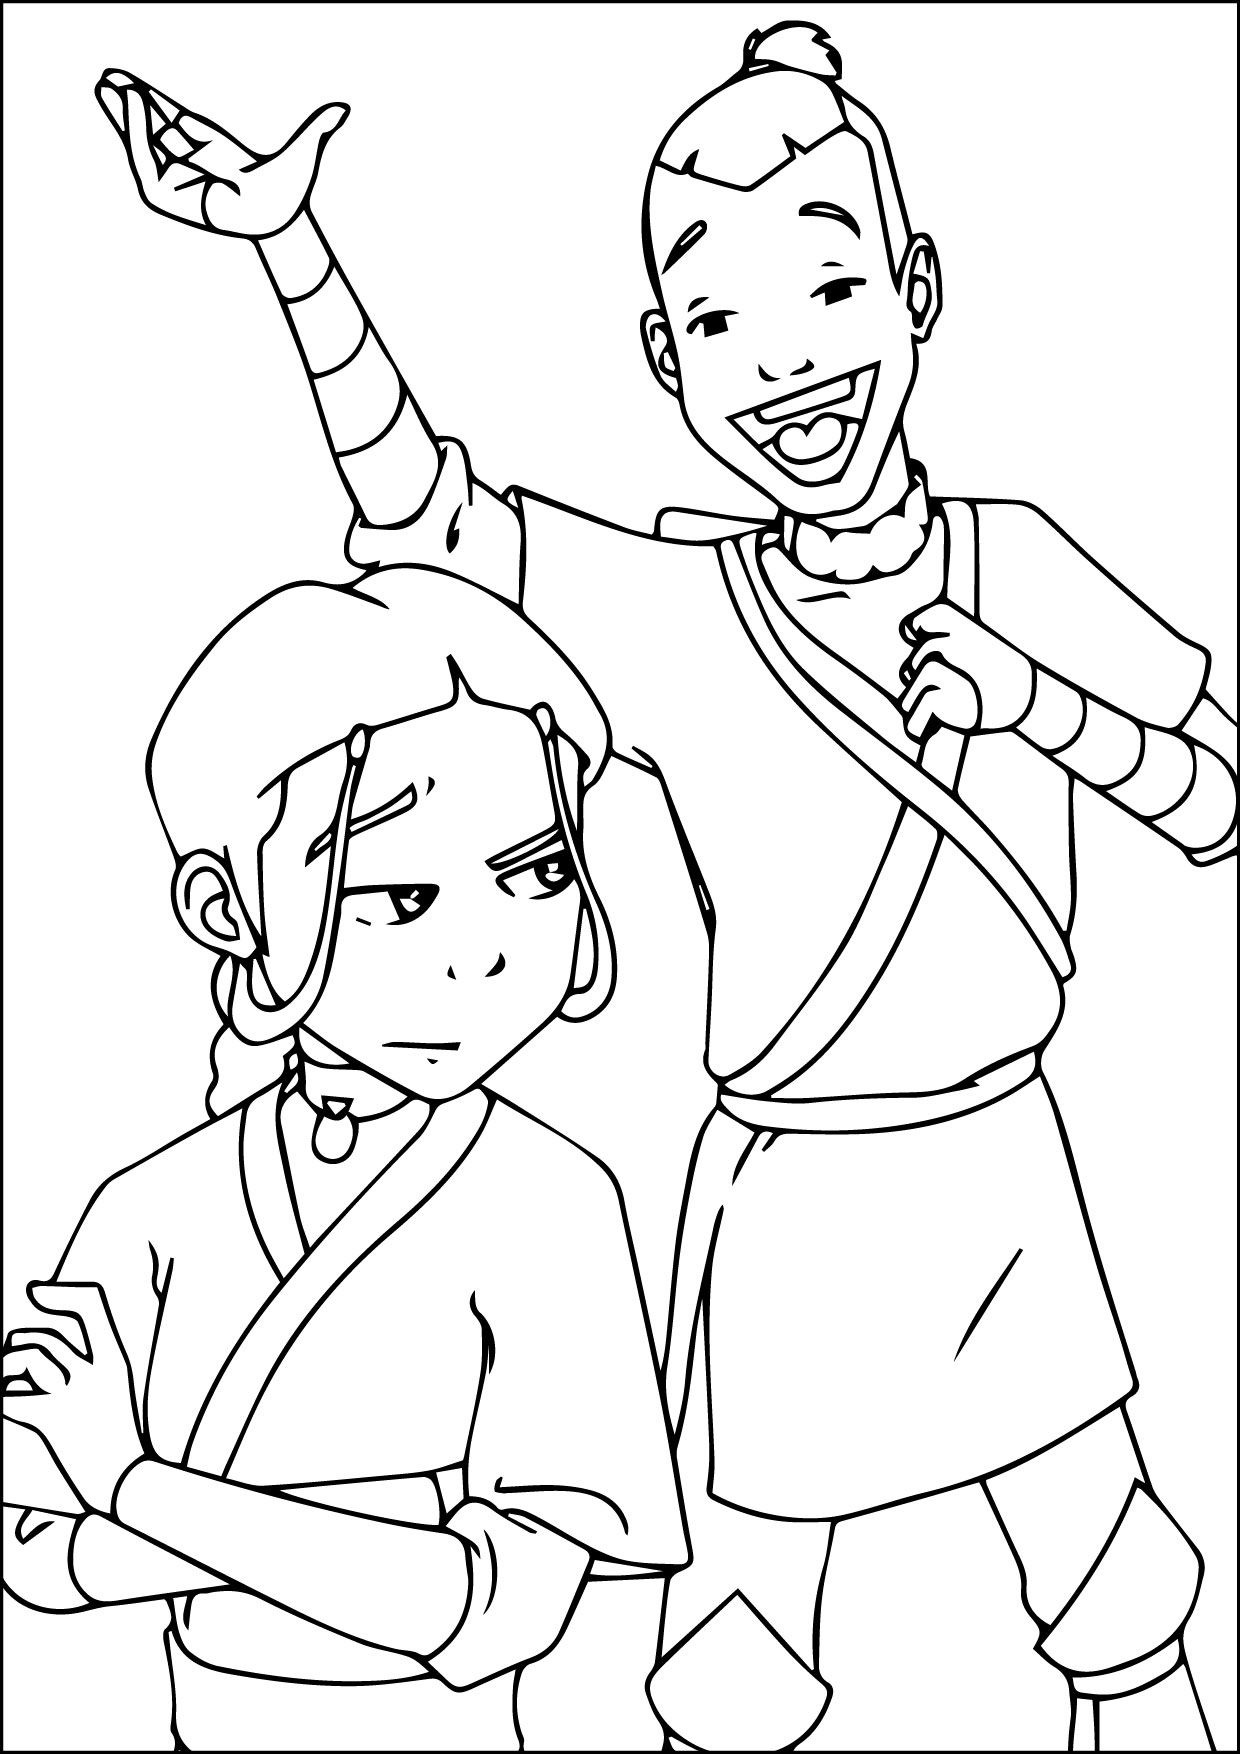 nice avatar coloring pages 07-09-2015_015507 | Animation Coloring ...